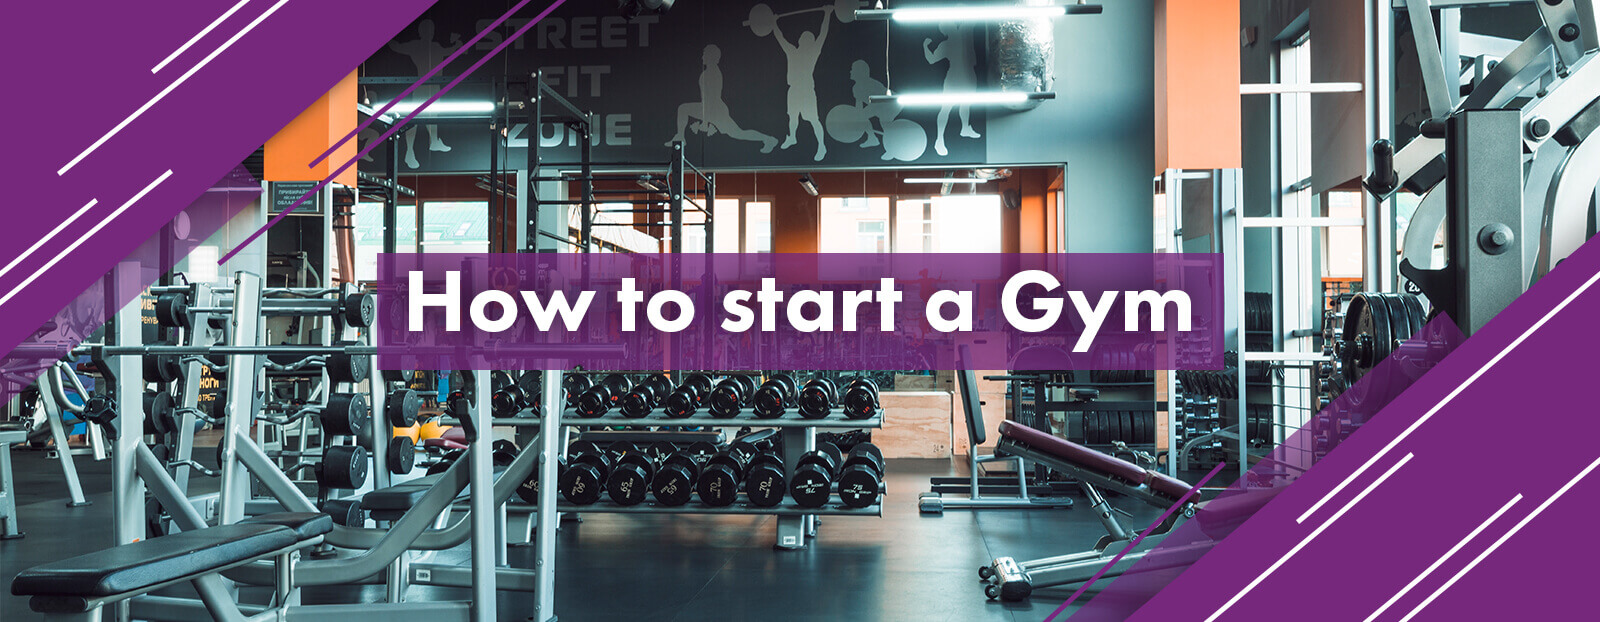 How To Start A Gym?